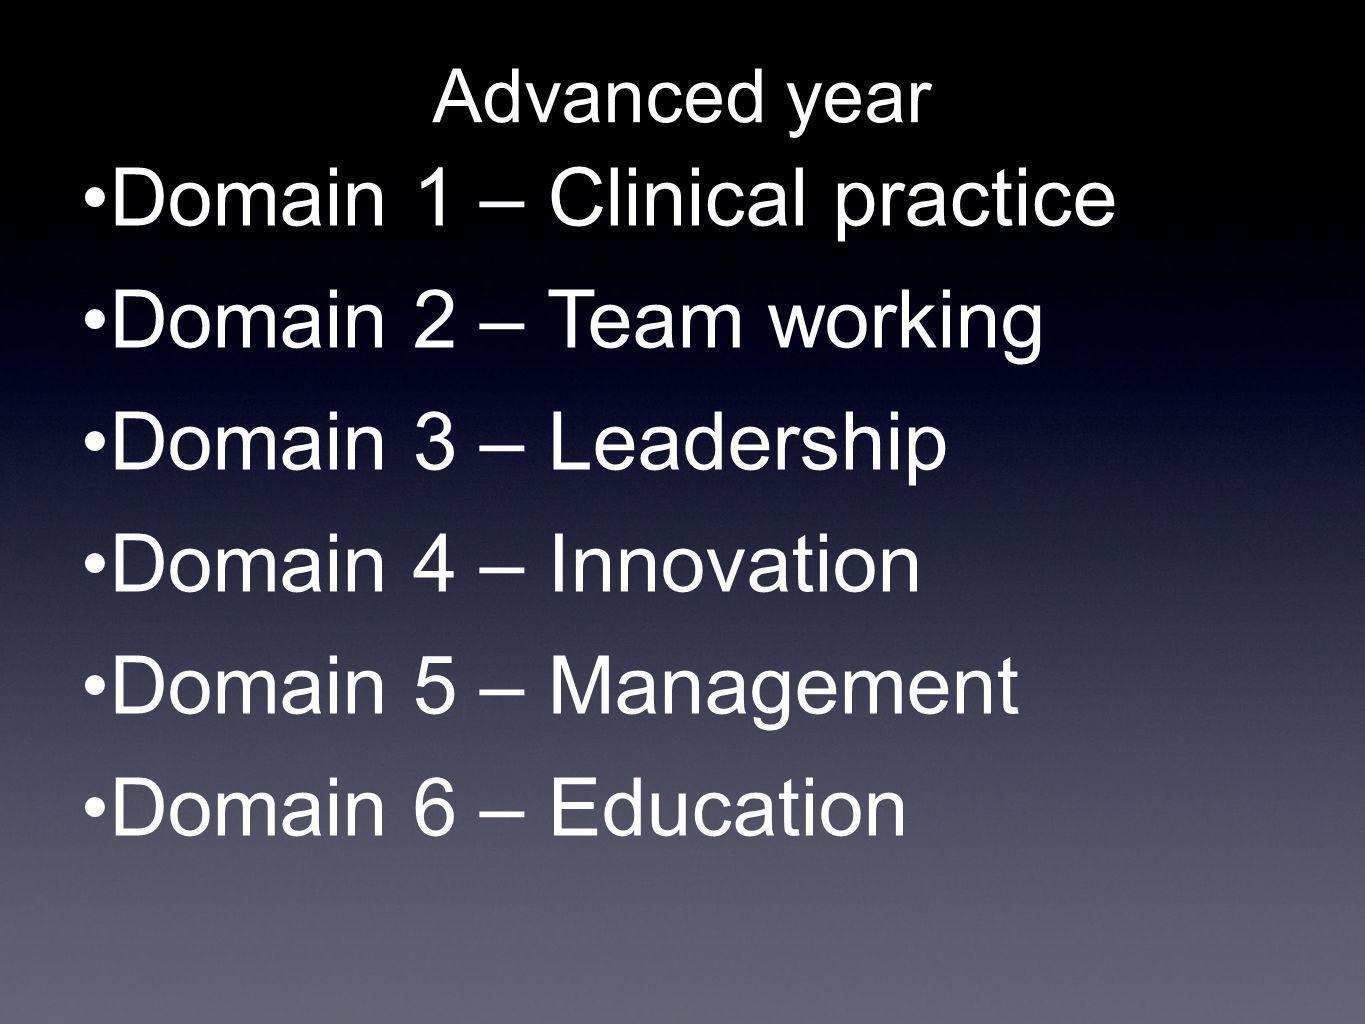 Domain 1 – Clinical practice Domain 2 – Team working Domain 3 – Leadership Domain 4 – Innovation Domain 5 – Management Domain 6 – Education Advanced y